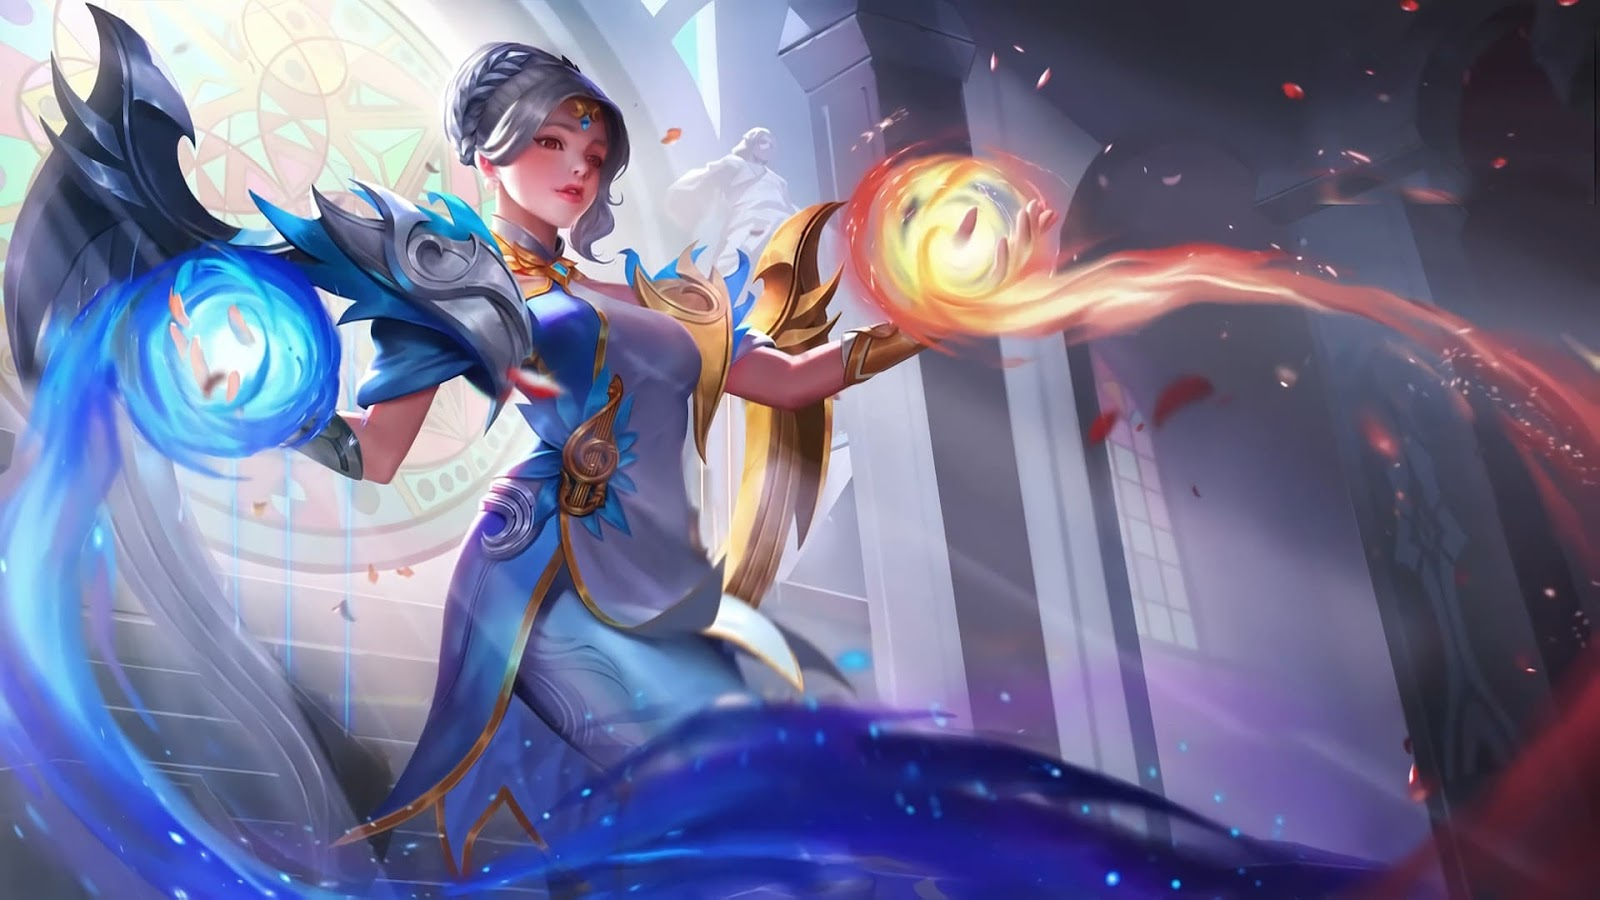 Wallpaper Lunox Cosmic Harmony Skin Mobile Legends Full HD for PC